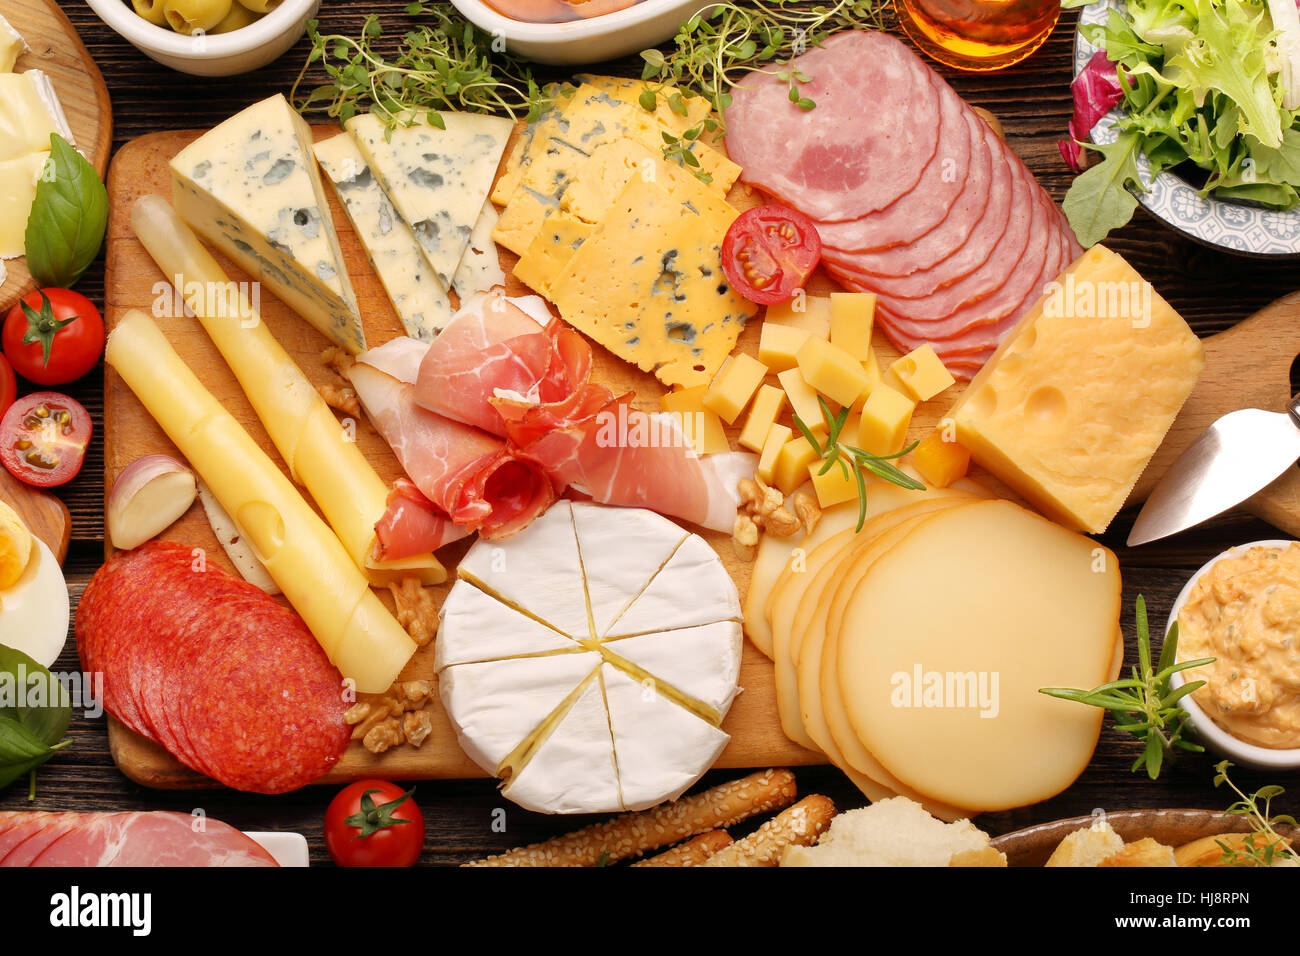 buffet of various types of cheese and appetizers set on rustic wooden board - Stock Image